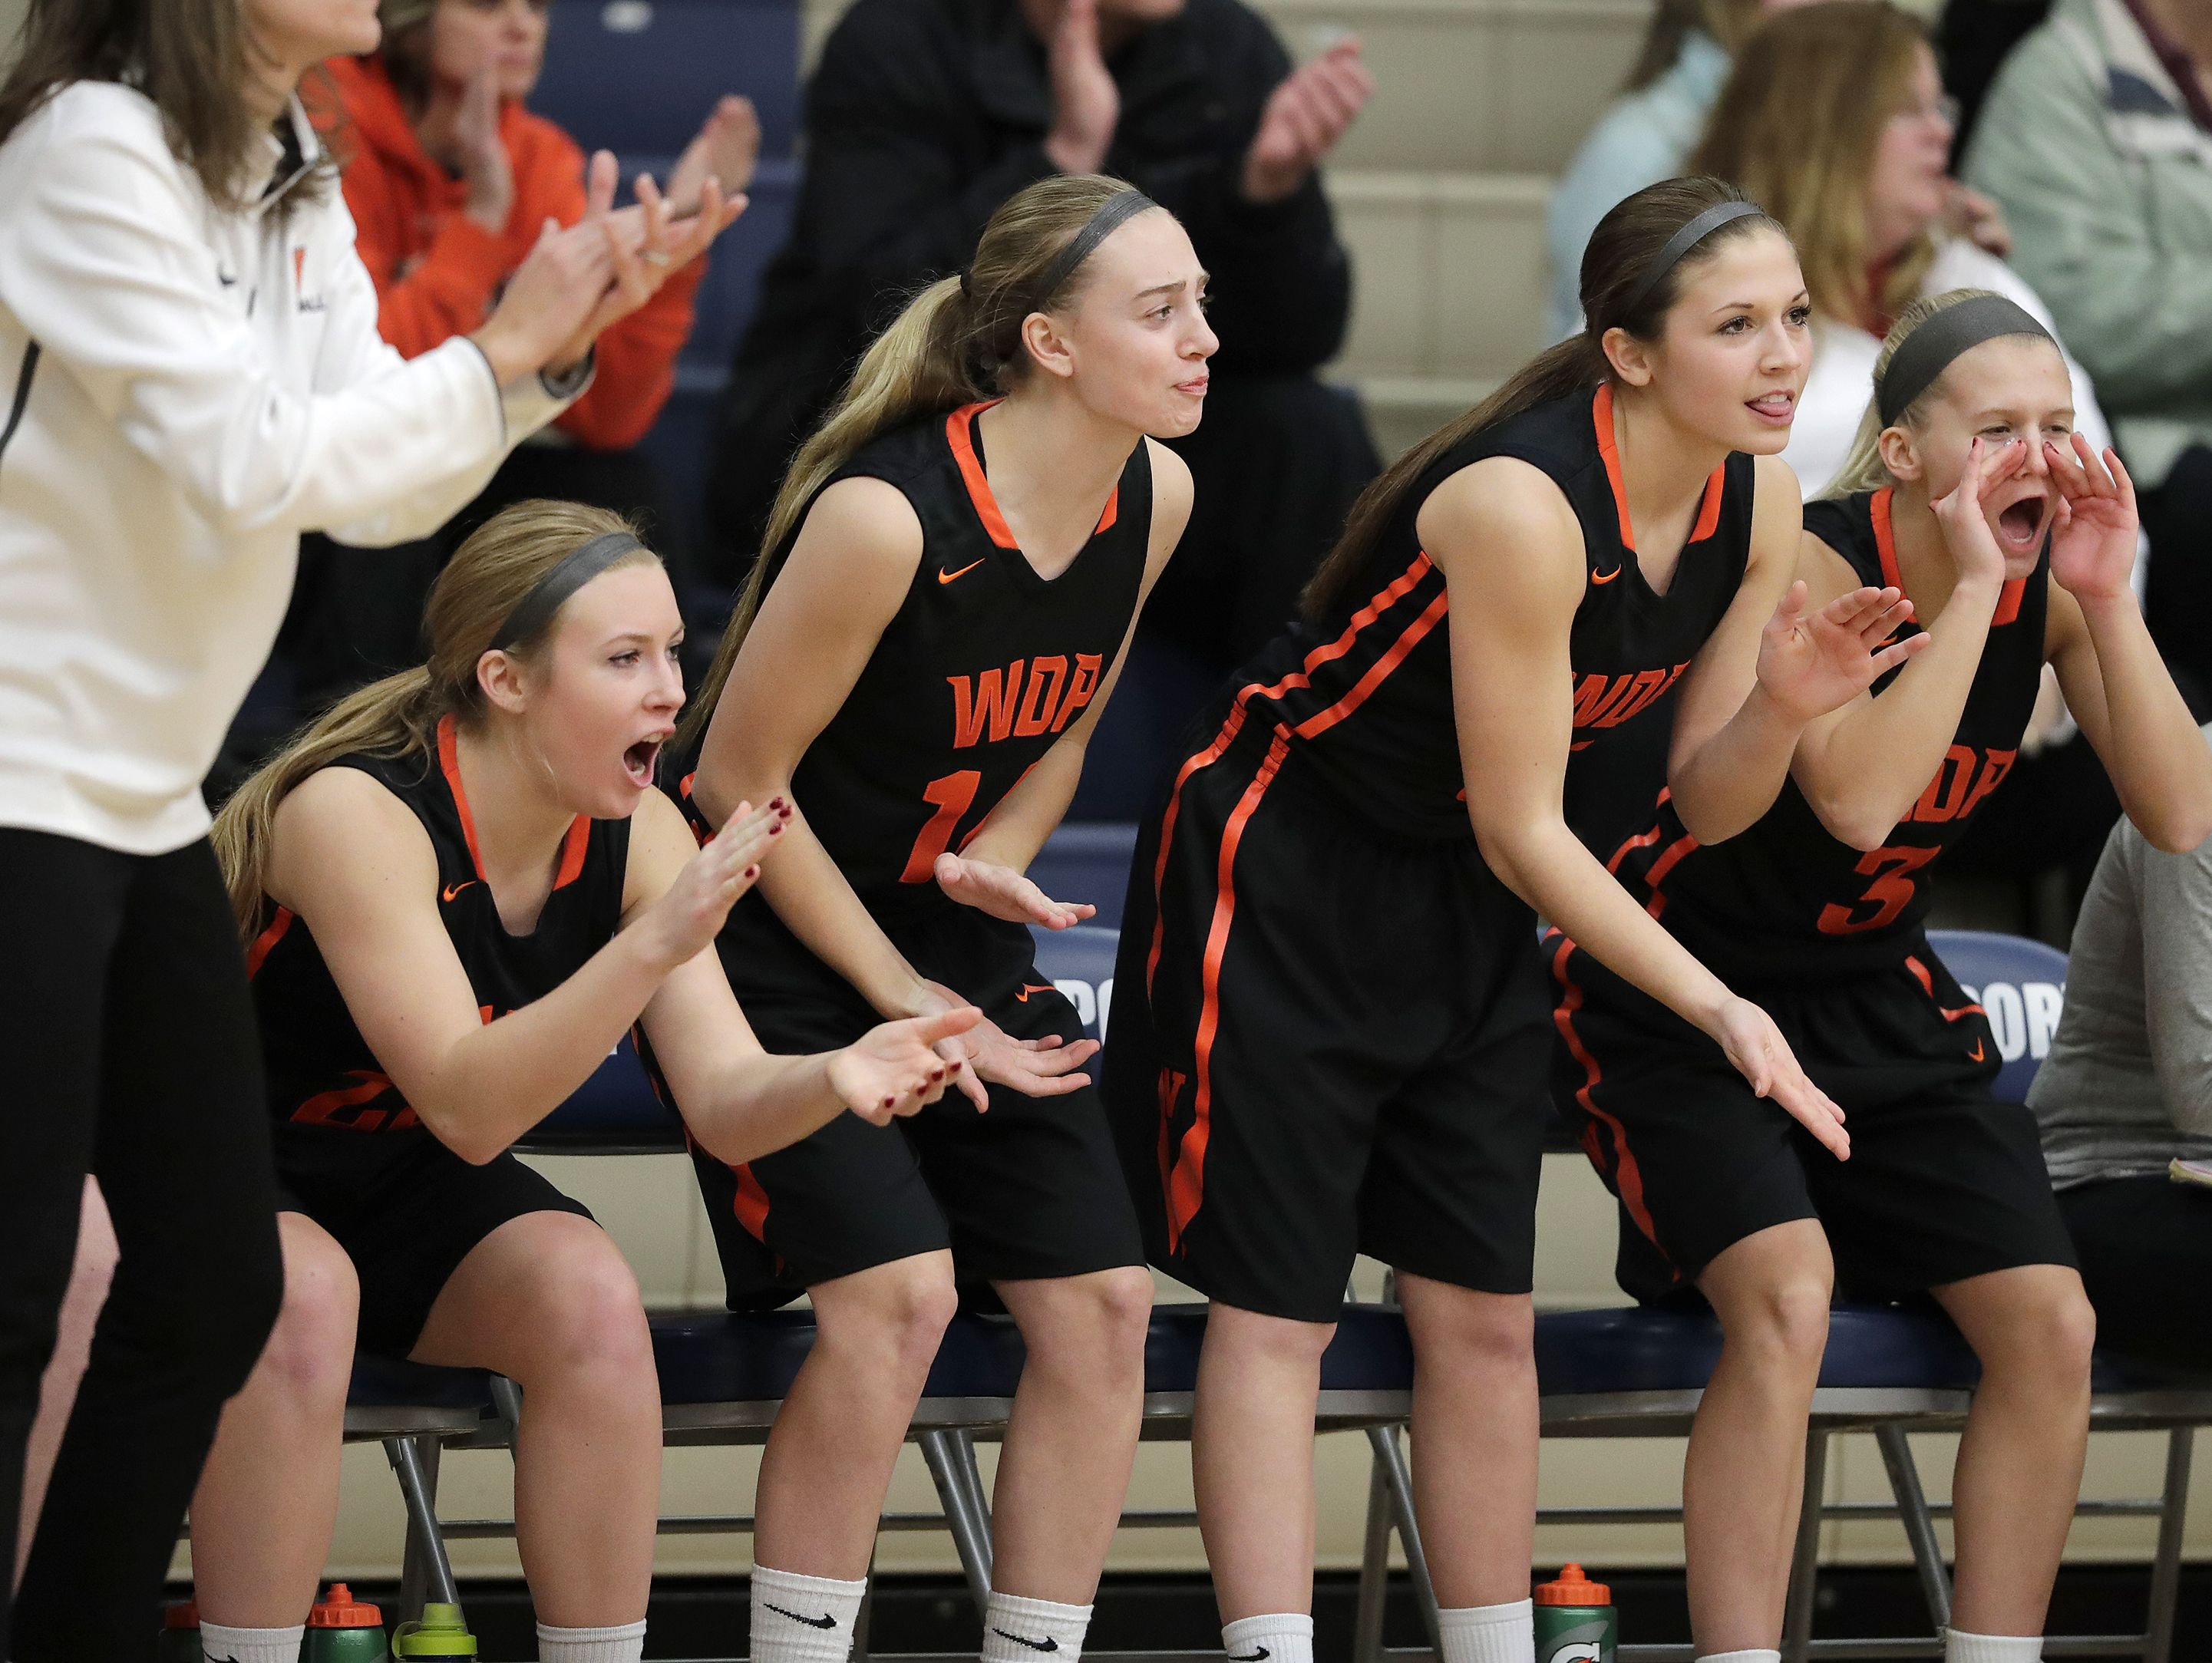 West De Pere girls basketball players Kaeli Raasch (left to right), Kasey Denis, Sydney Appleton and Caroline Kandravi cheer during a nonconference game on Dec. 30 at Bay Port. The Phantoms earned academic all-state honors last season and have a 3.83 GPA this year.